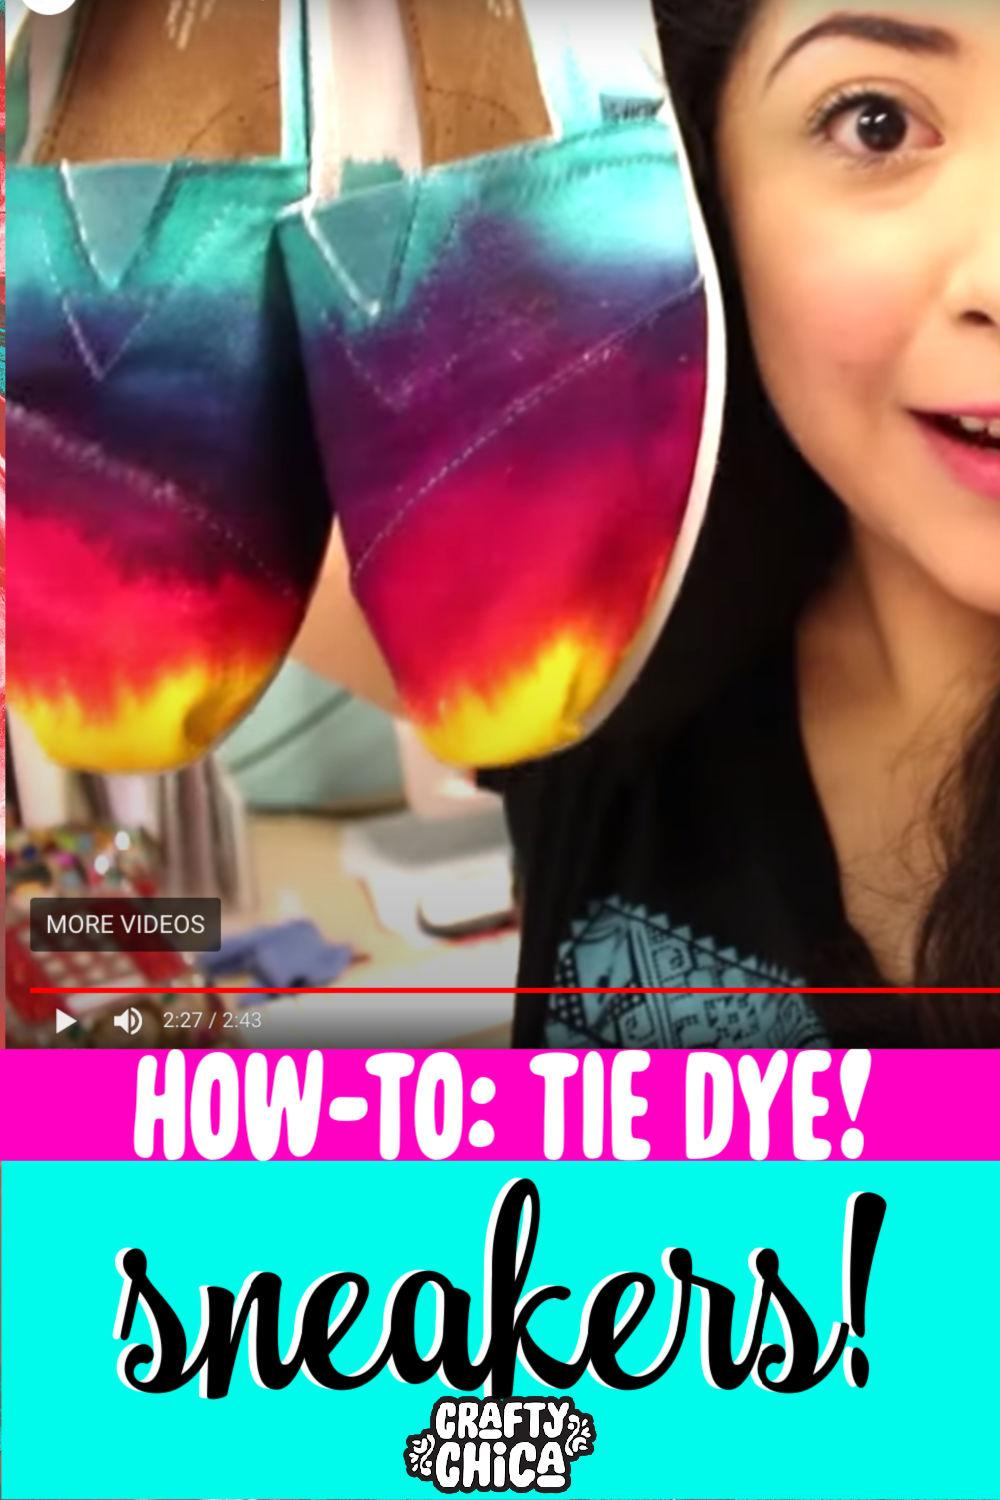 How to tie-dye your sneakers! #craftychica #tiedye